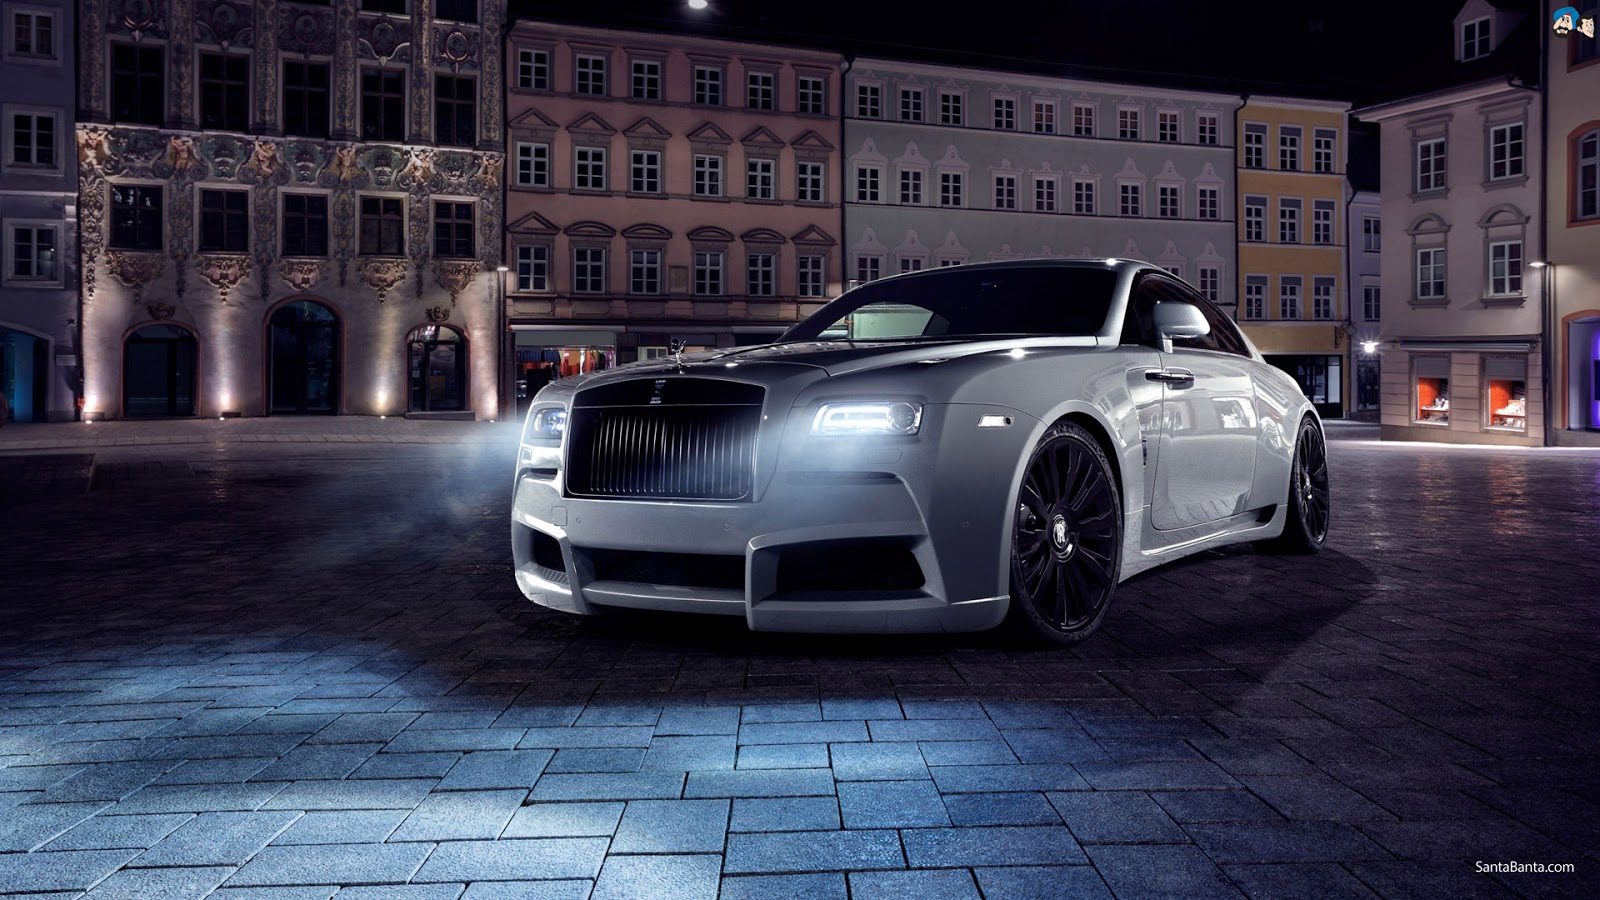 Rolls royce wallpapers most beautiful places in the for Wallpaper roll